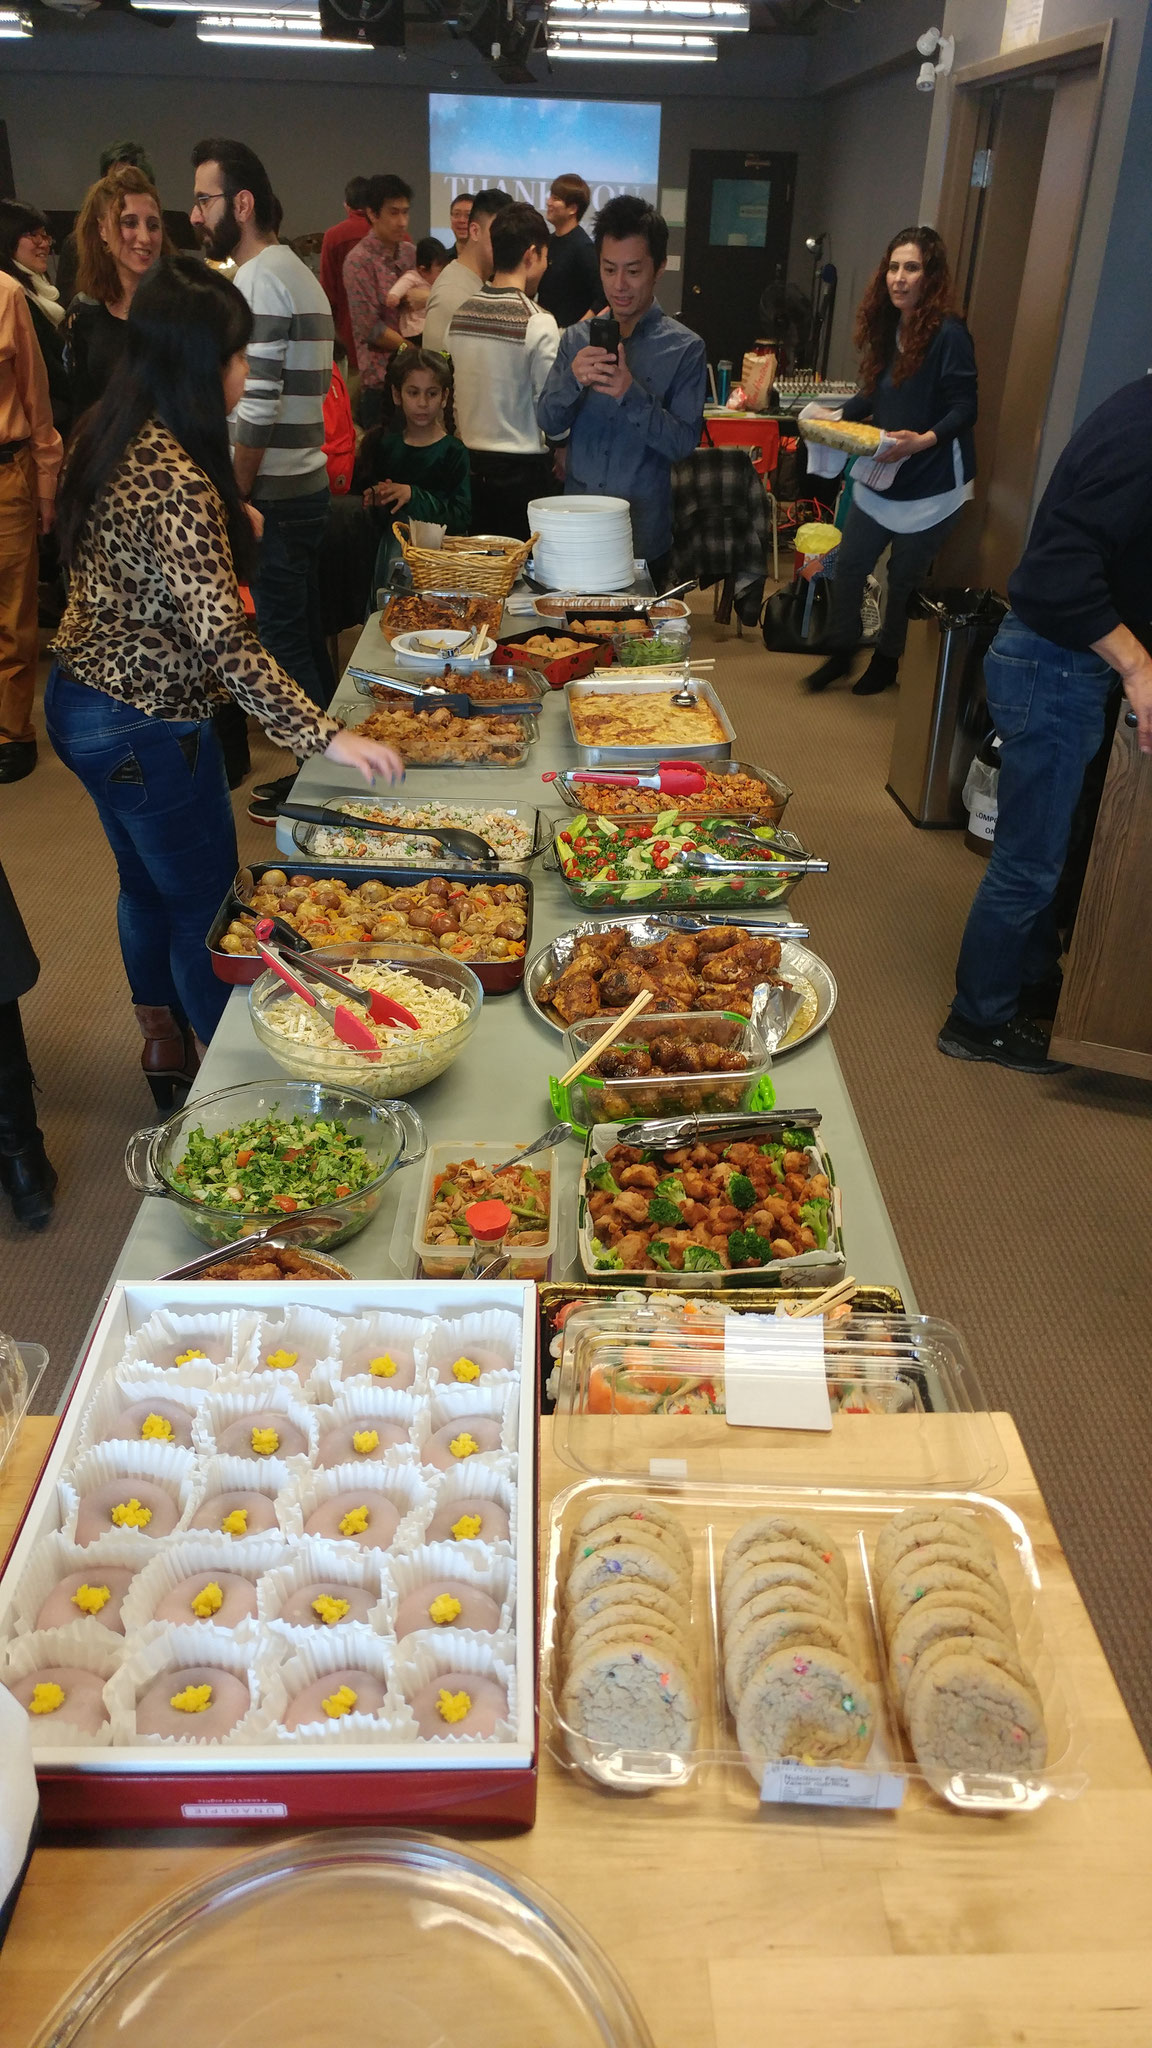 2/18 Joint Service with Hope Church Potluck